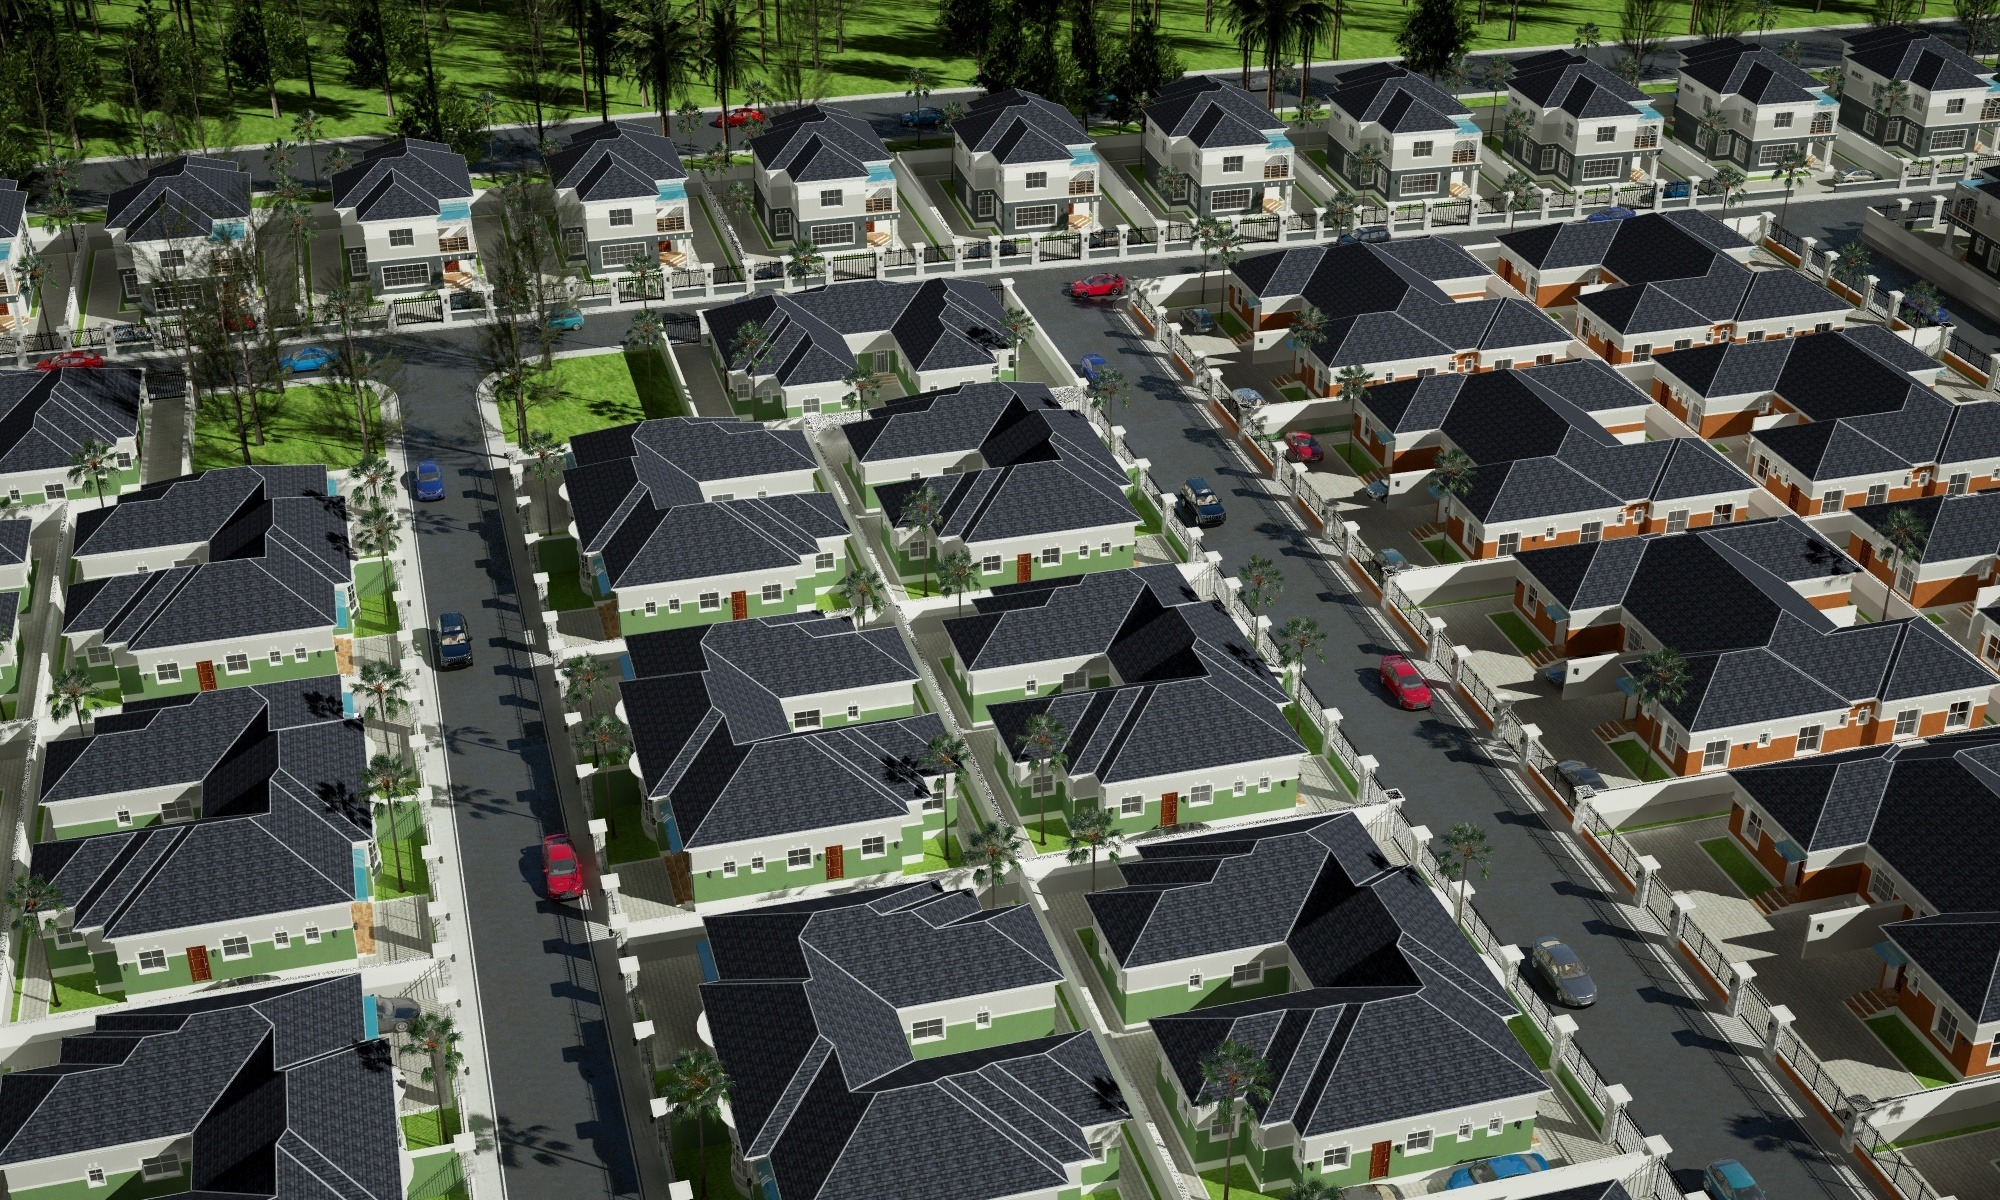 dantata housing estate kubuwa phase ii - dantata town developers